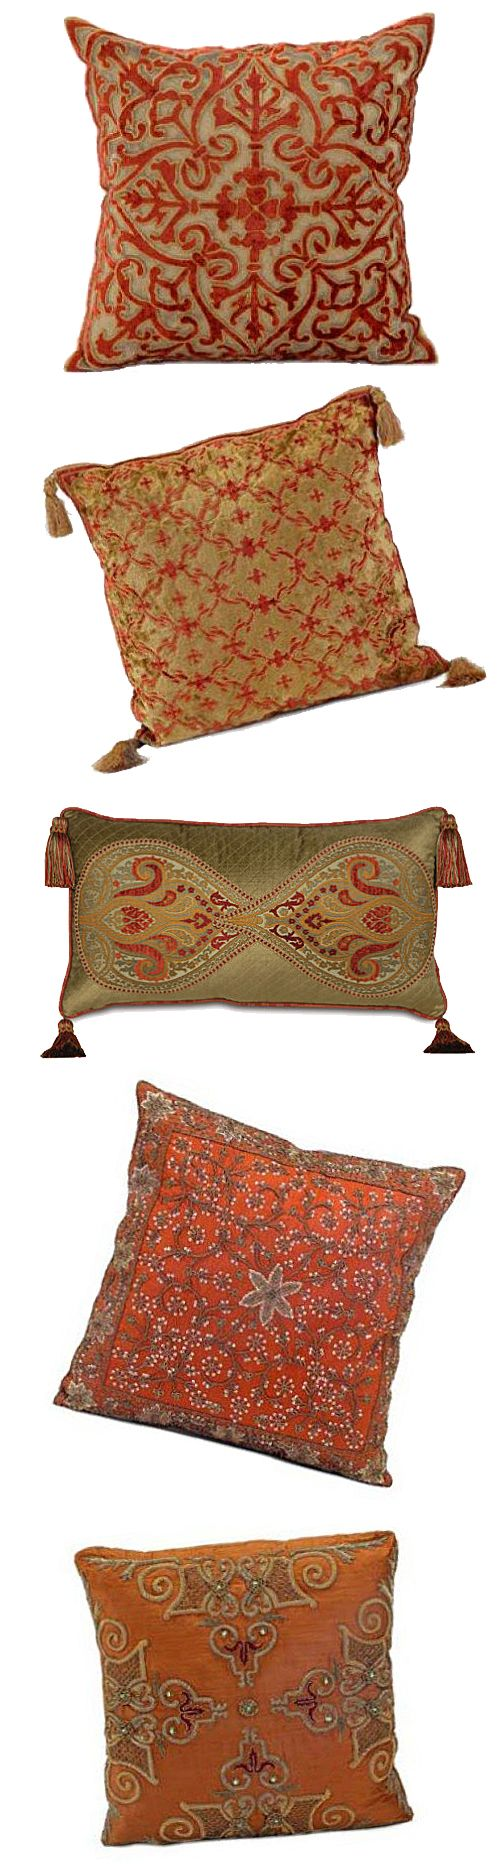 India pied-à-terre | Spice Patterned Pillows